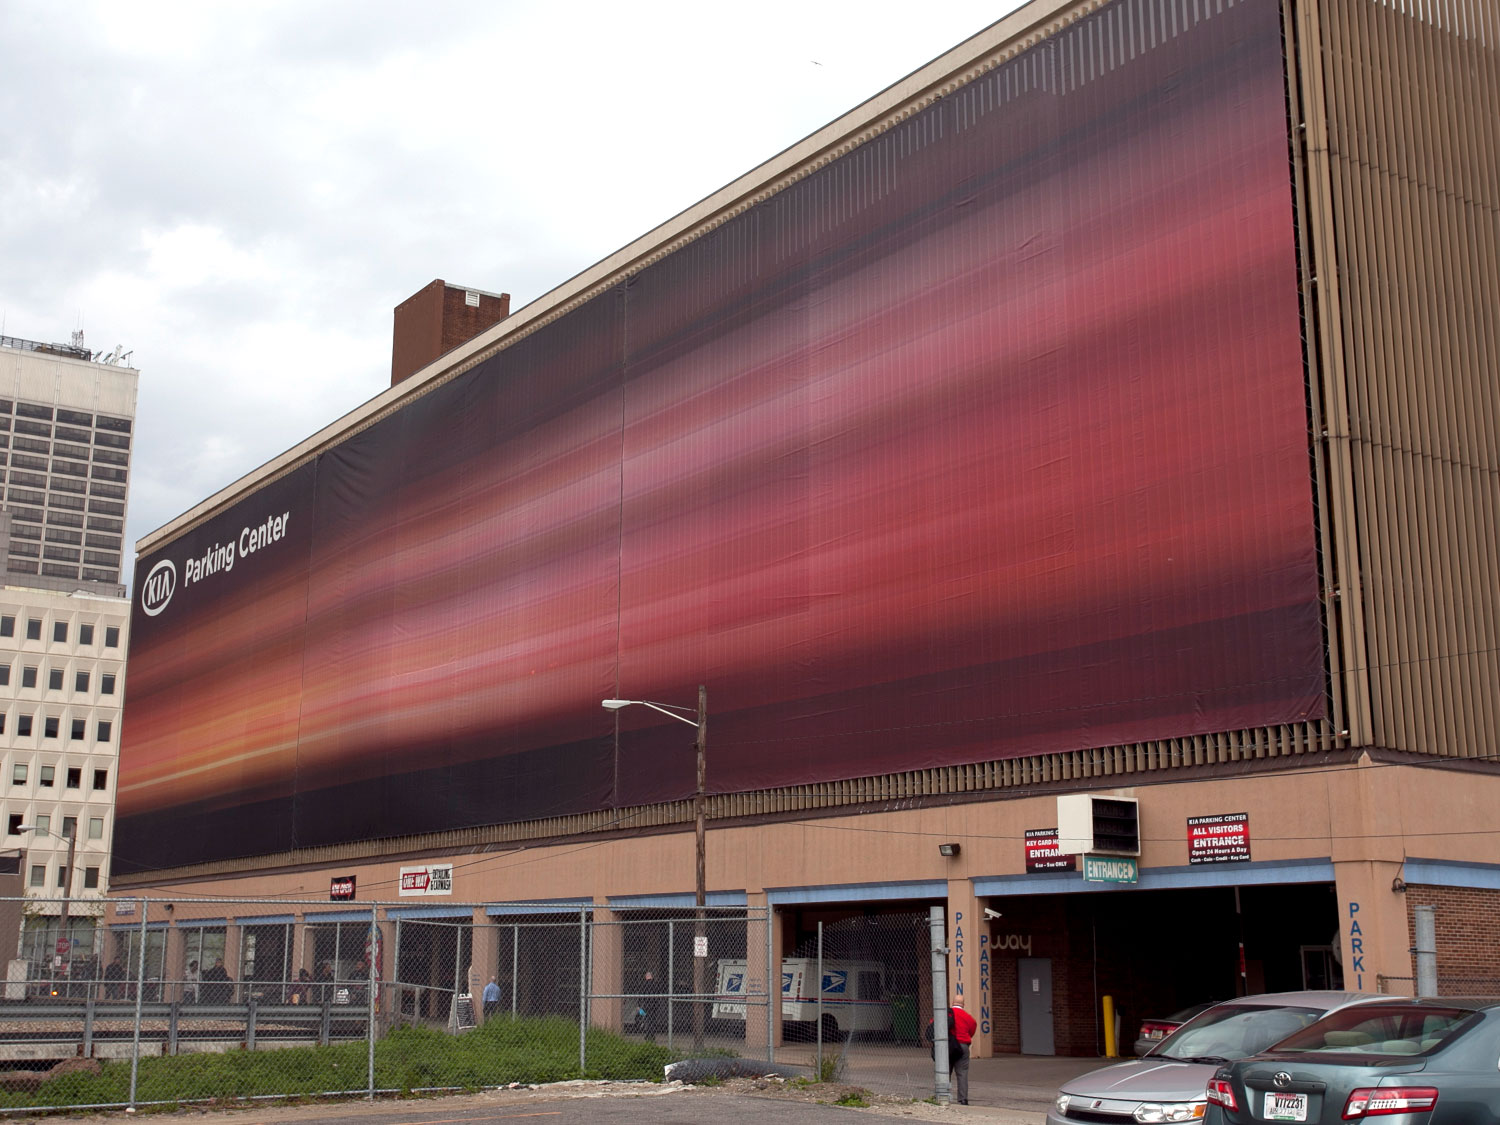 Kia Parking Center Large Format Building Banner Graphic